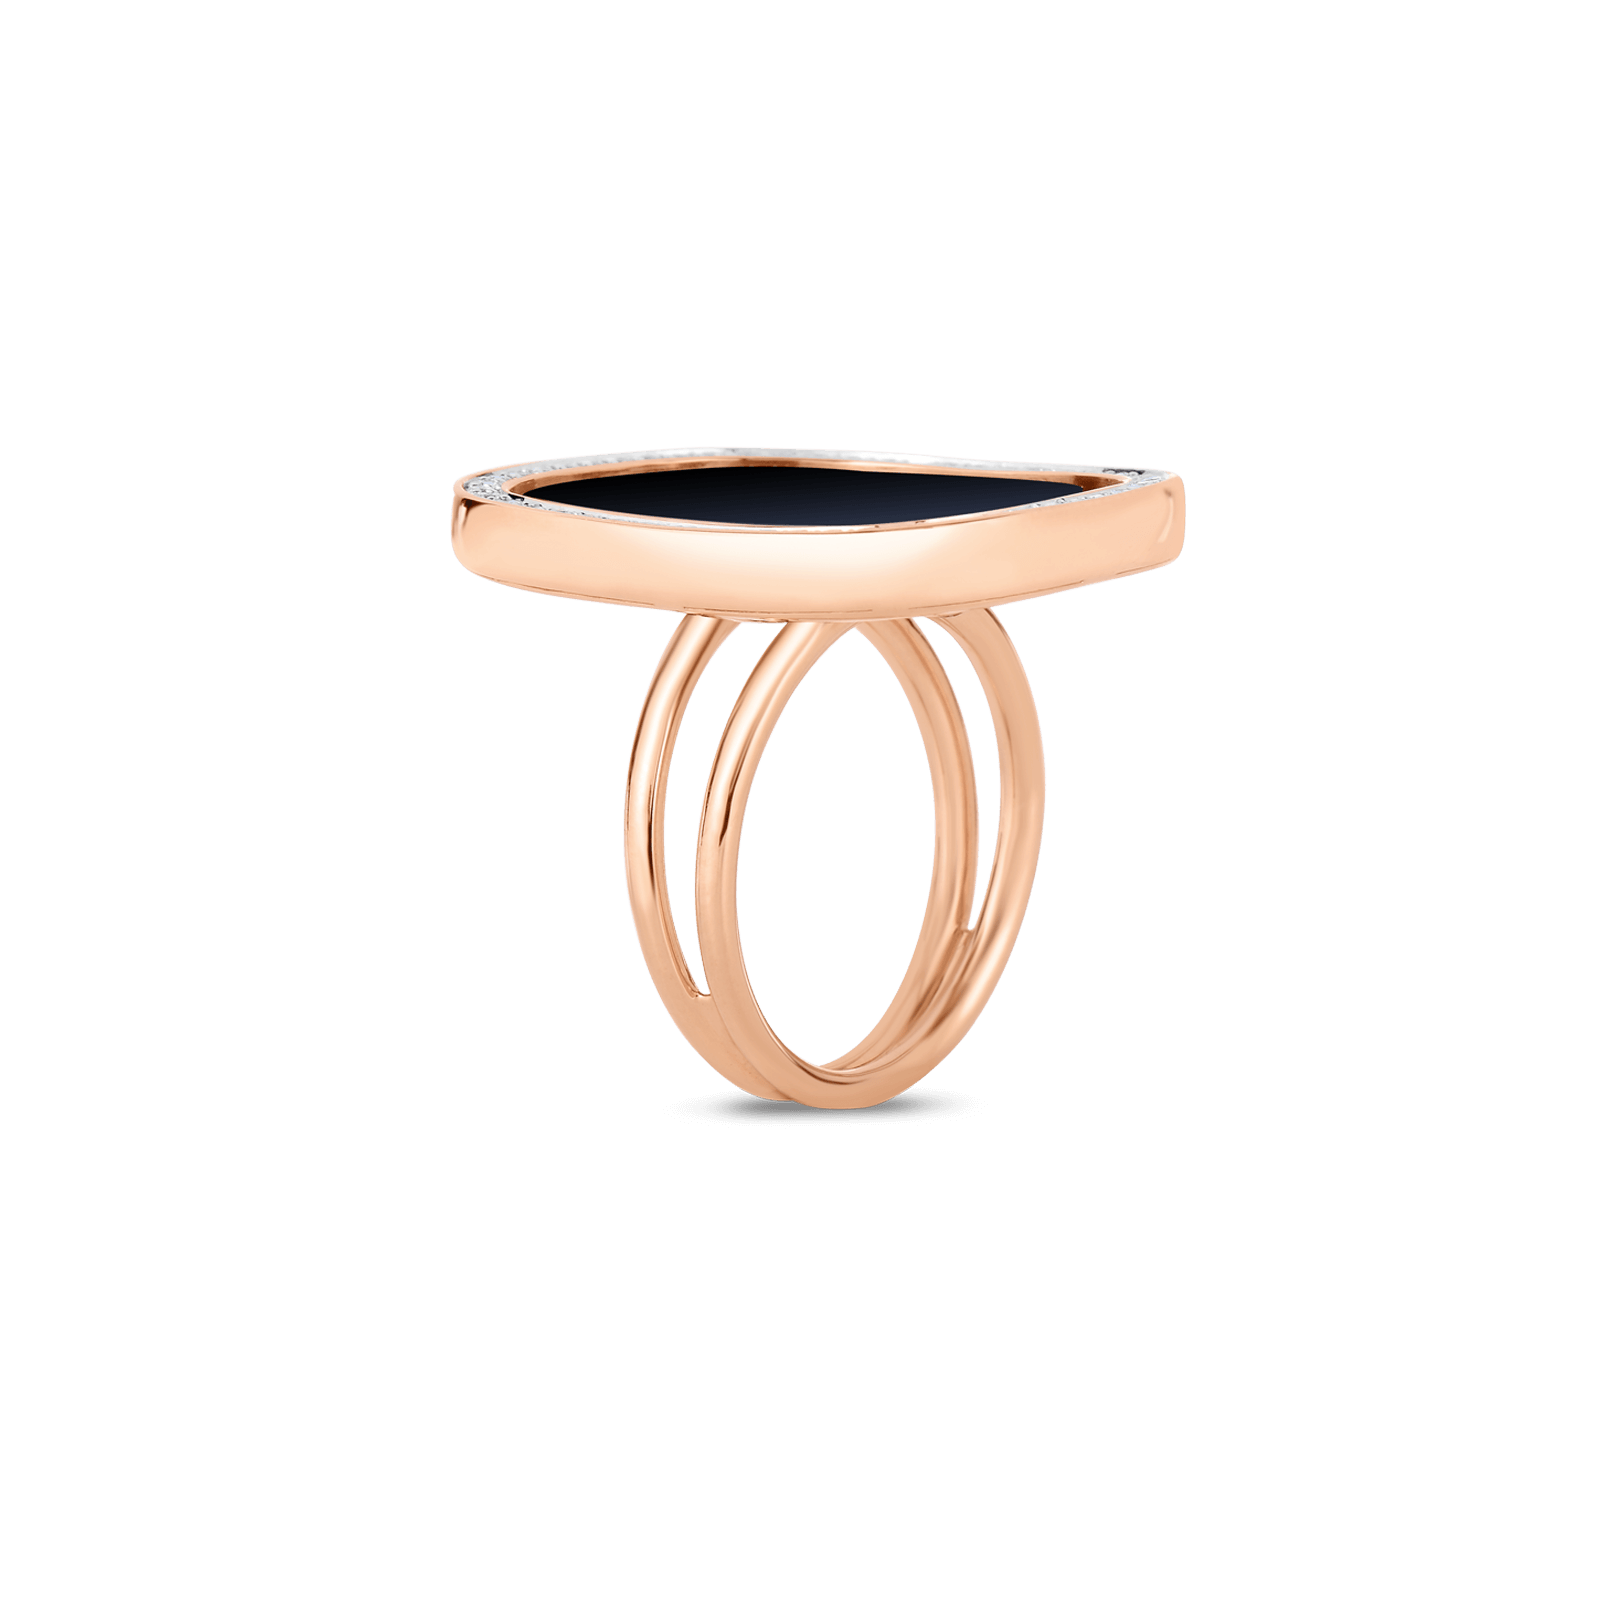 Roberto-Coin-Black-Jade-18K-Rose-Gold-Ring-with-Black-Jade-and-Diamonds-888962AX65JX_2